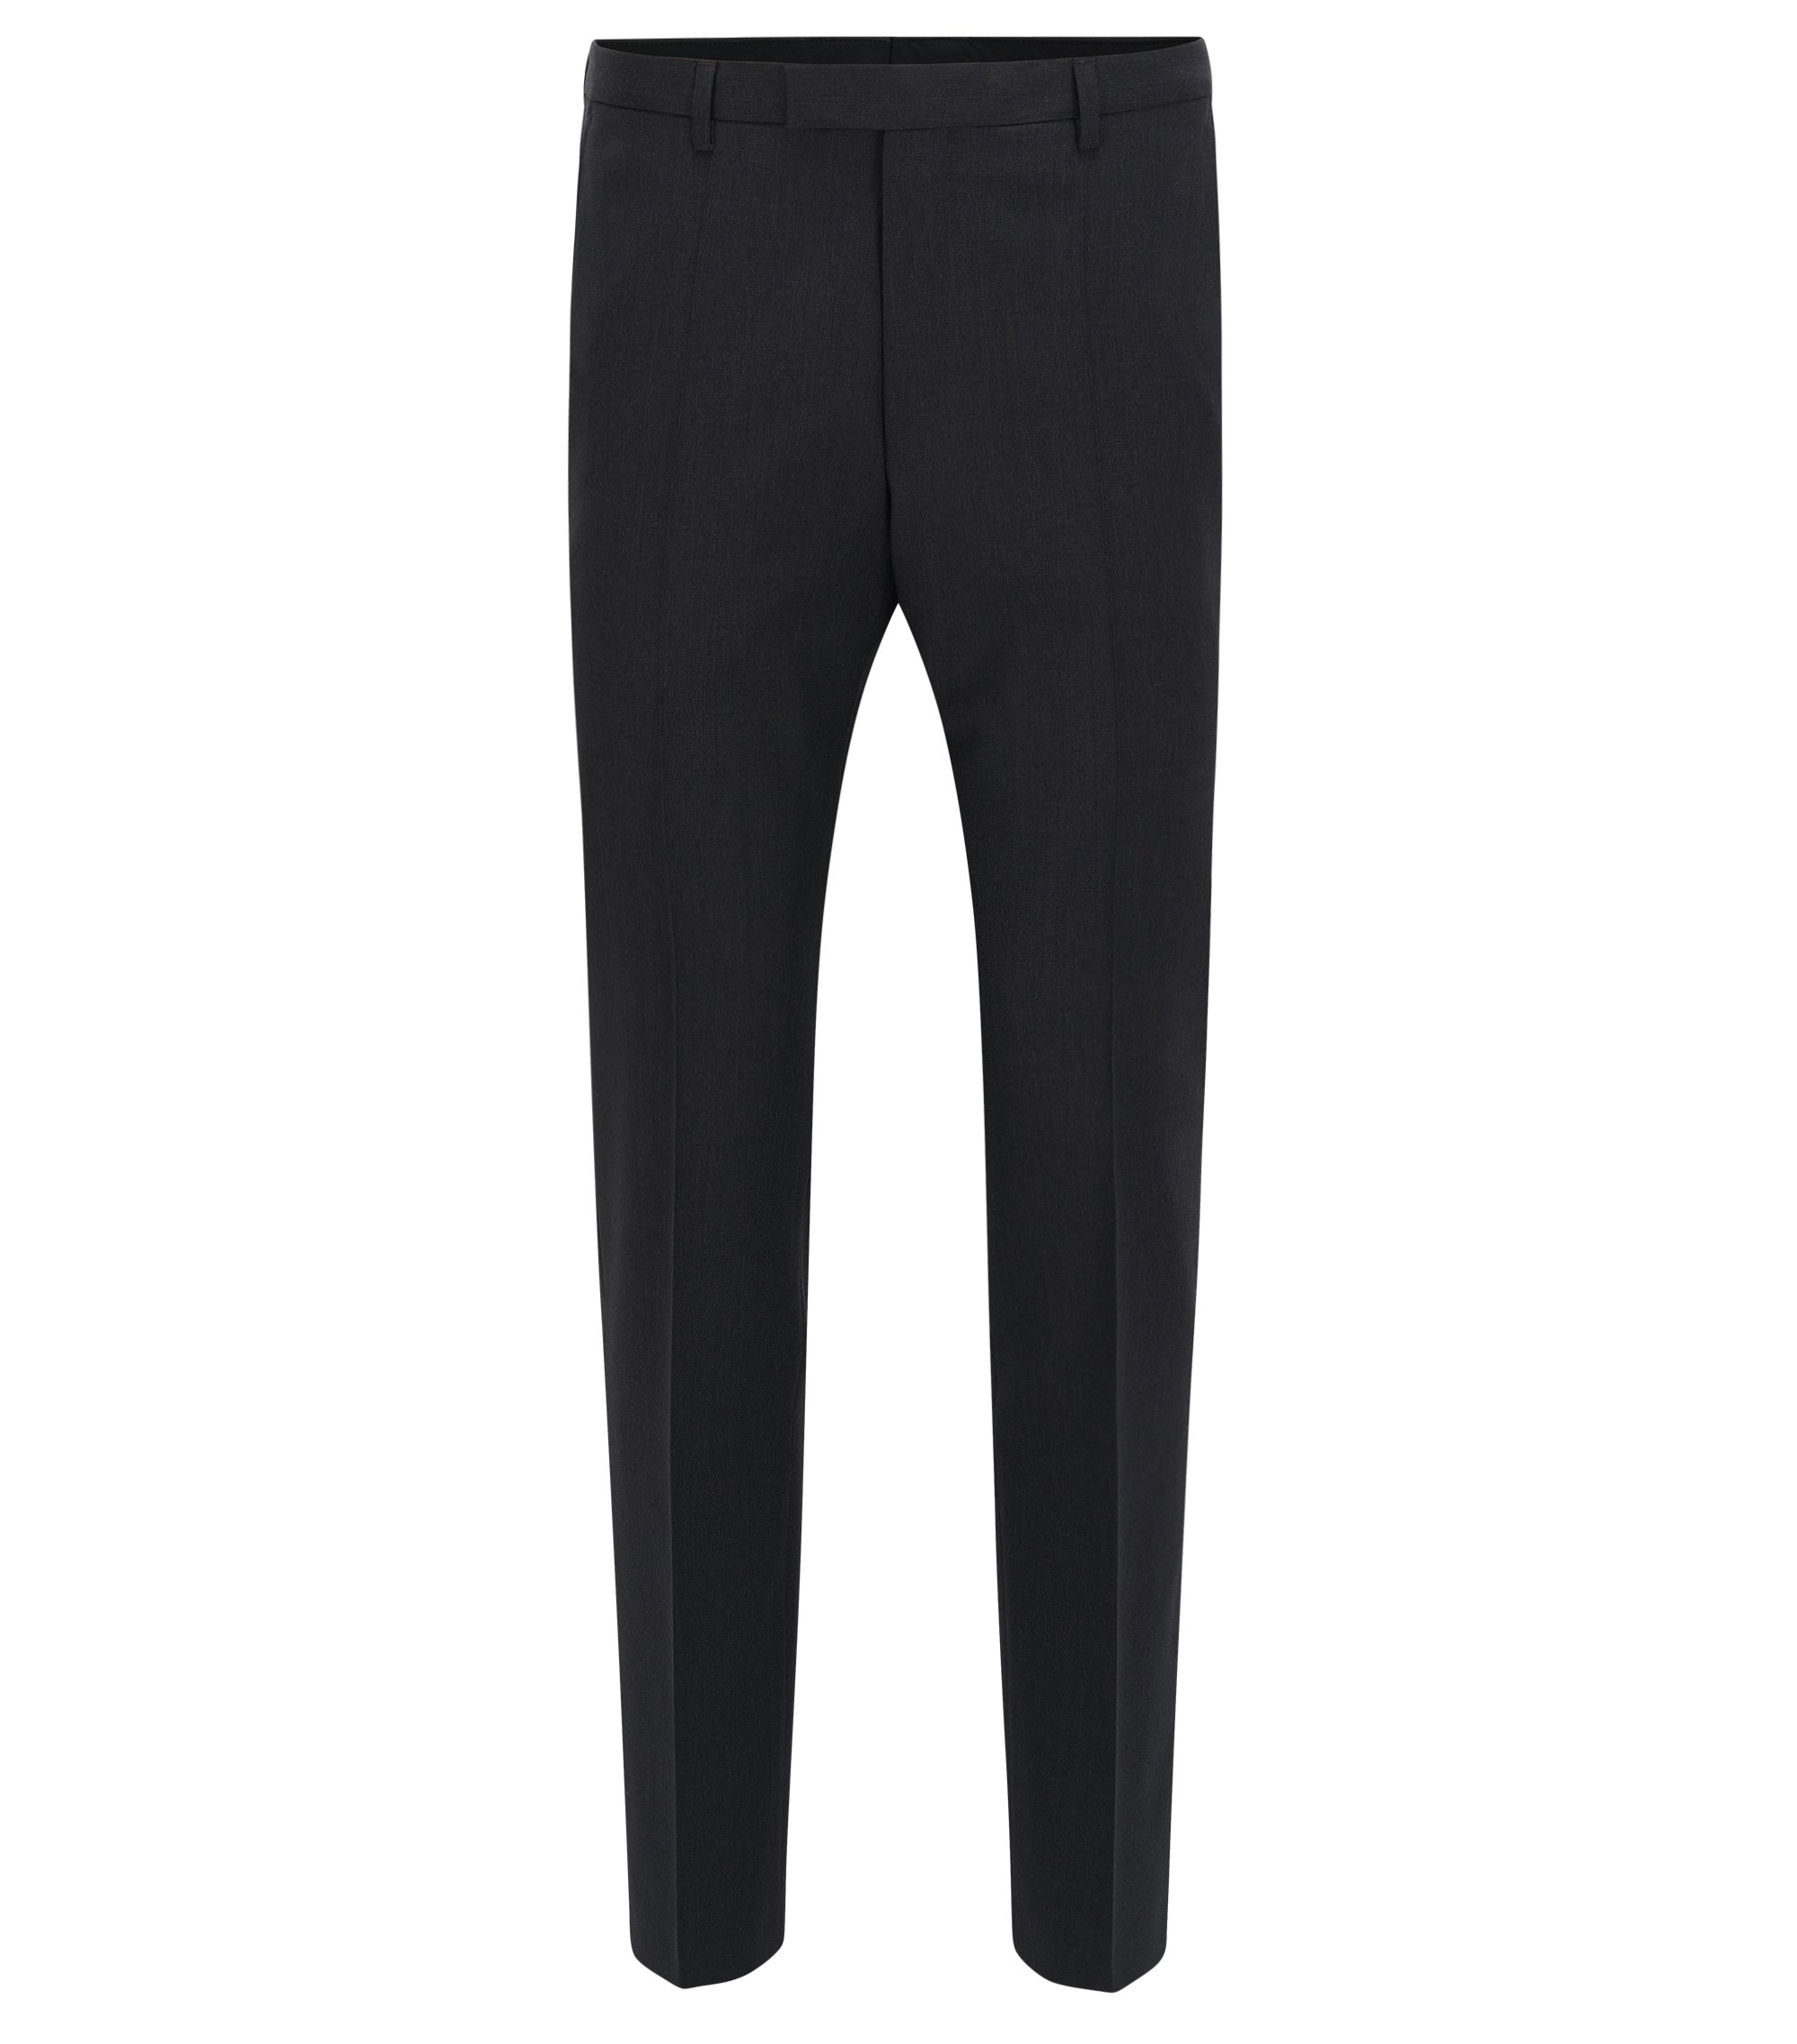 Virgin Wool Dress Pants, Regular Fit | Lenon CYL, Dark Grey